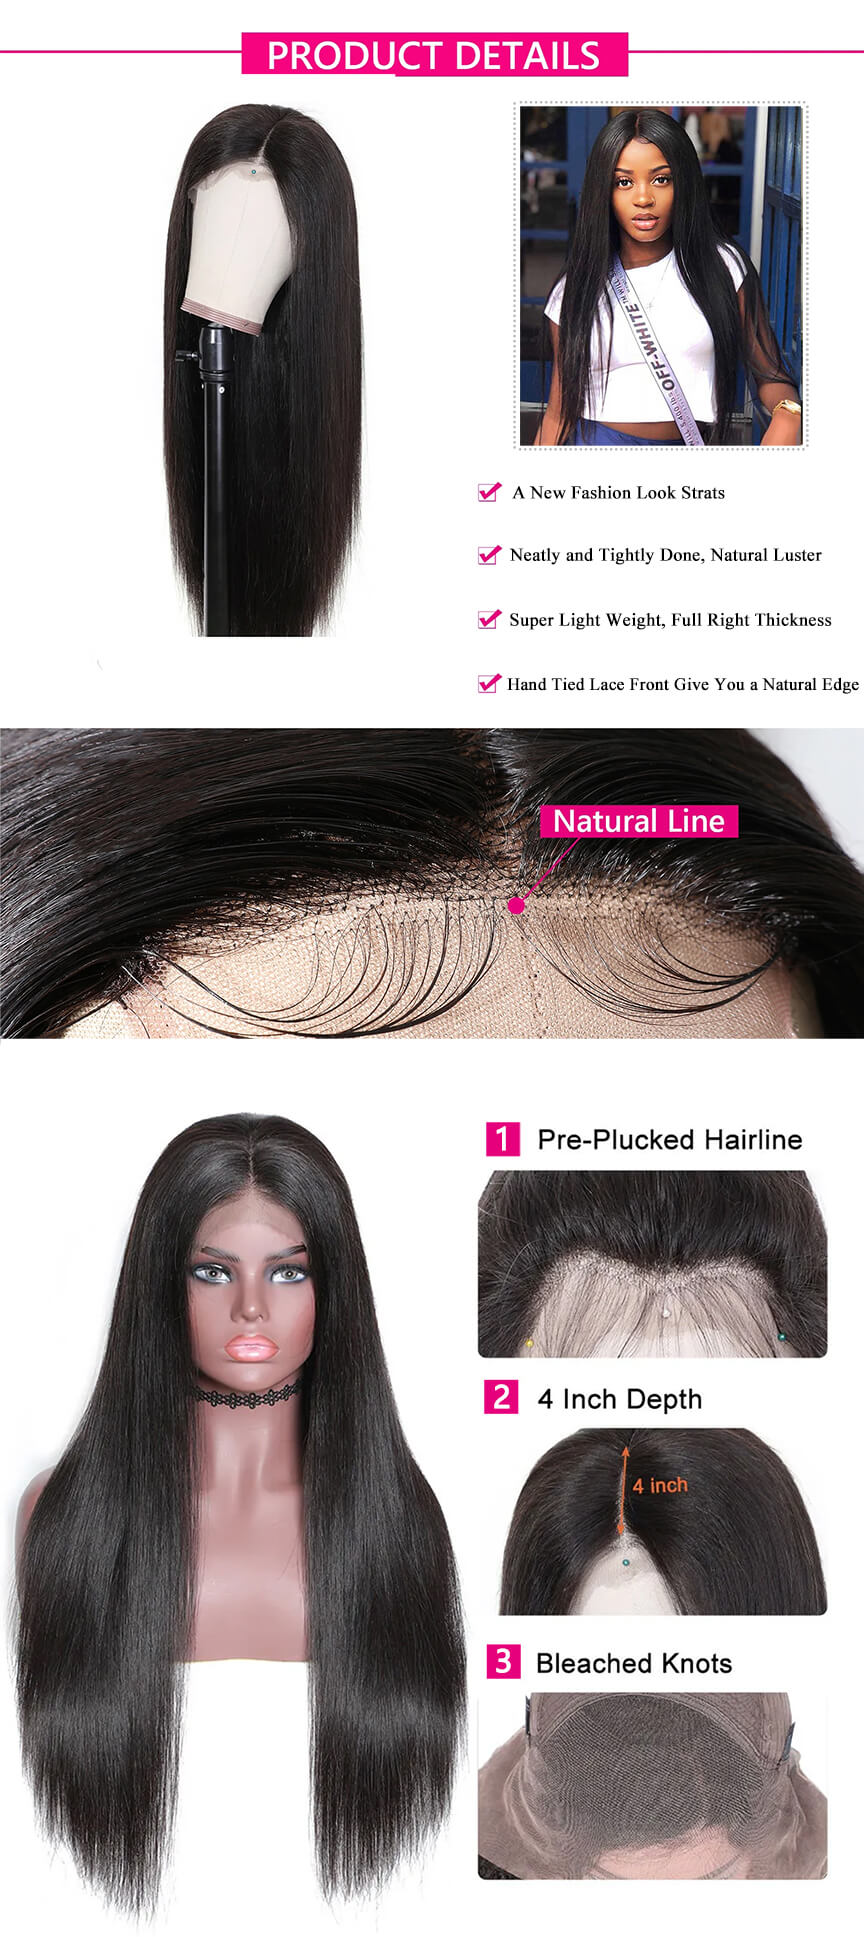 Rosebony Straight Hair Lace Front Wig Human Hair Detail Description